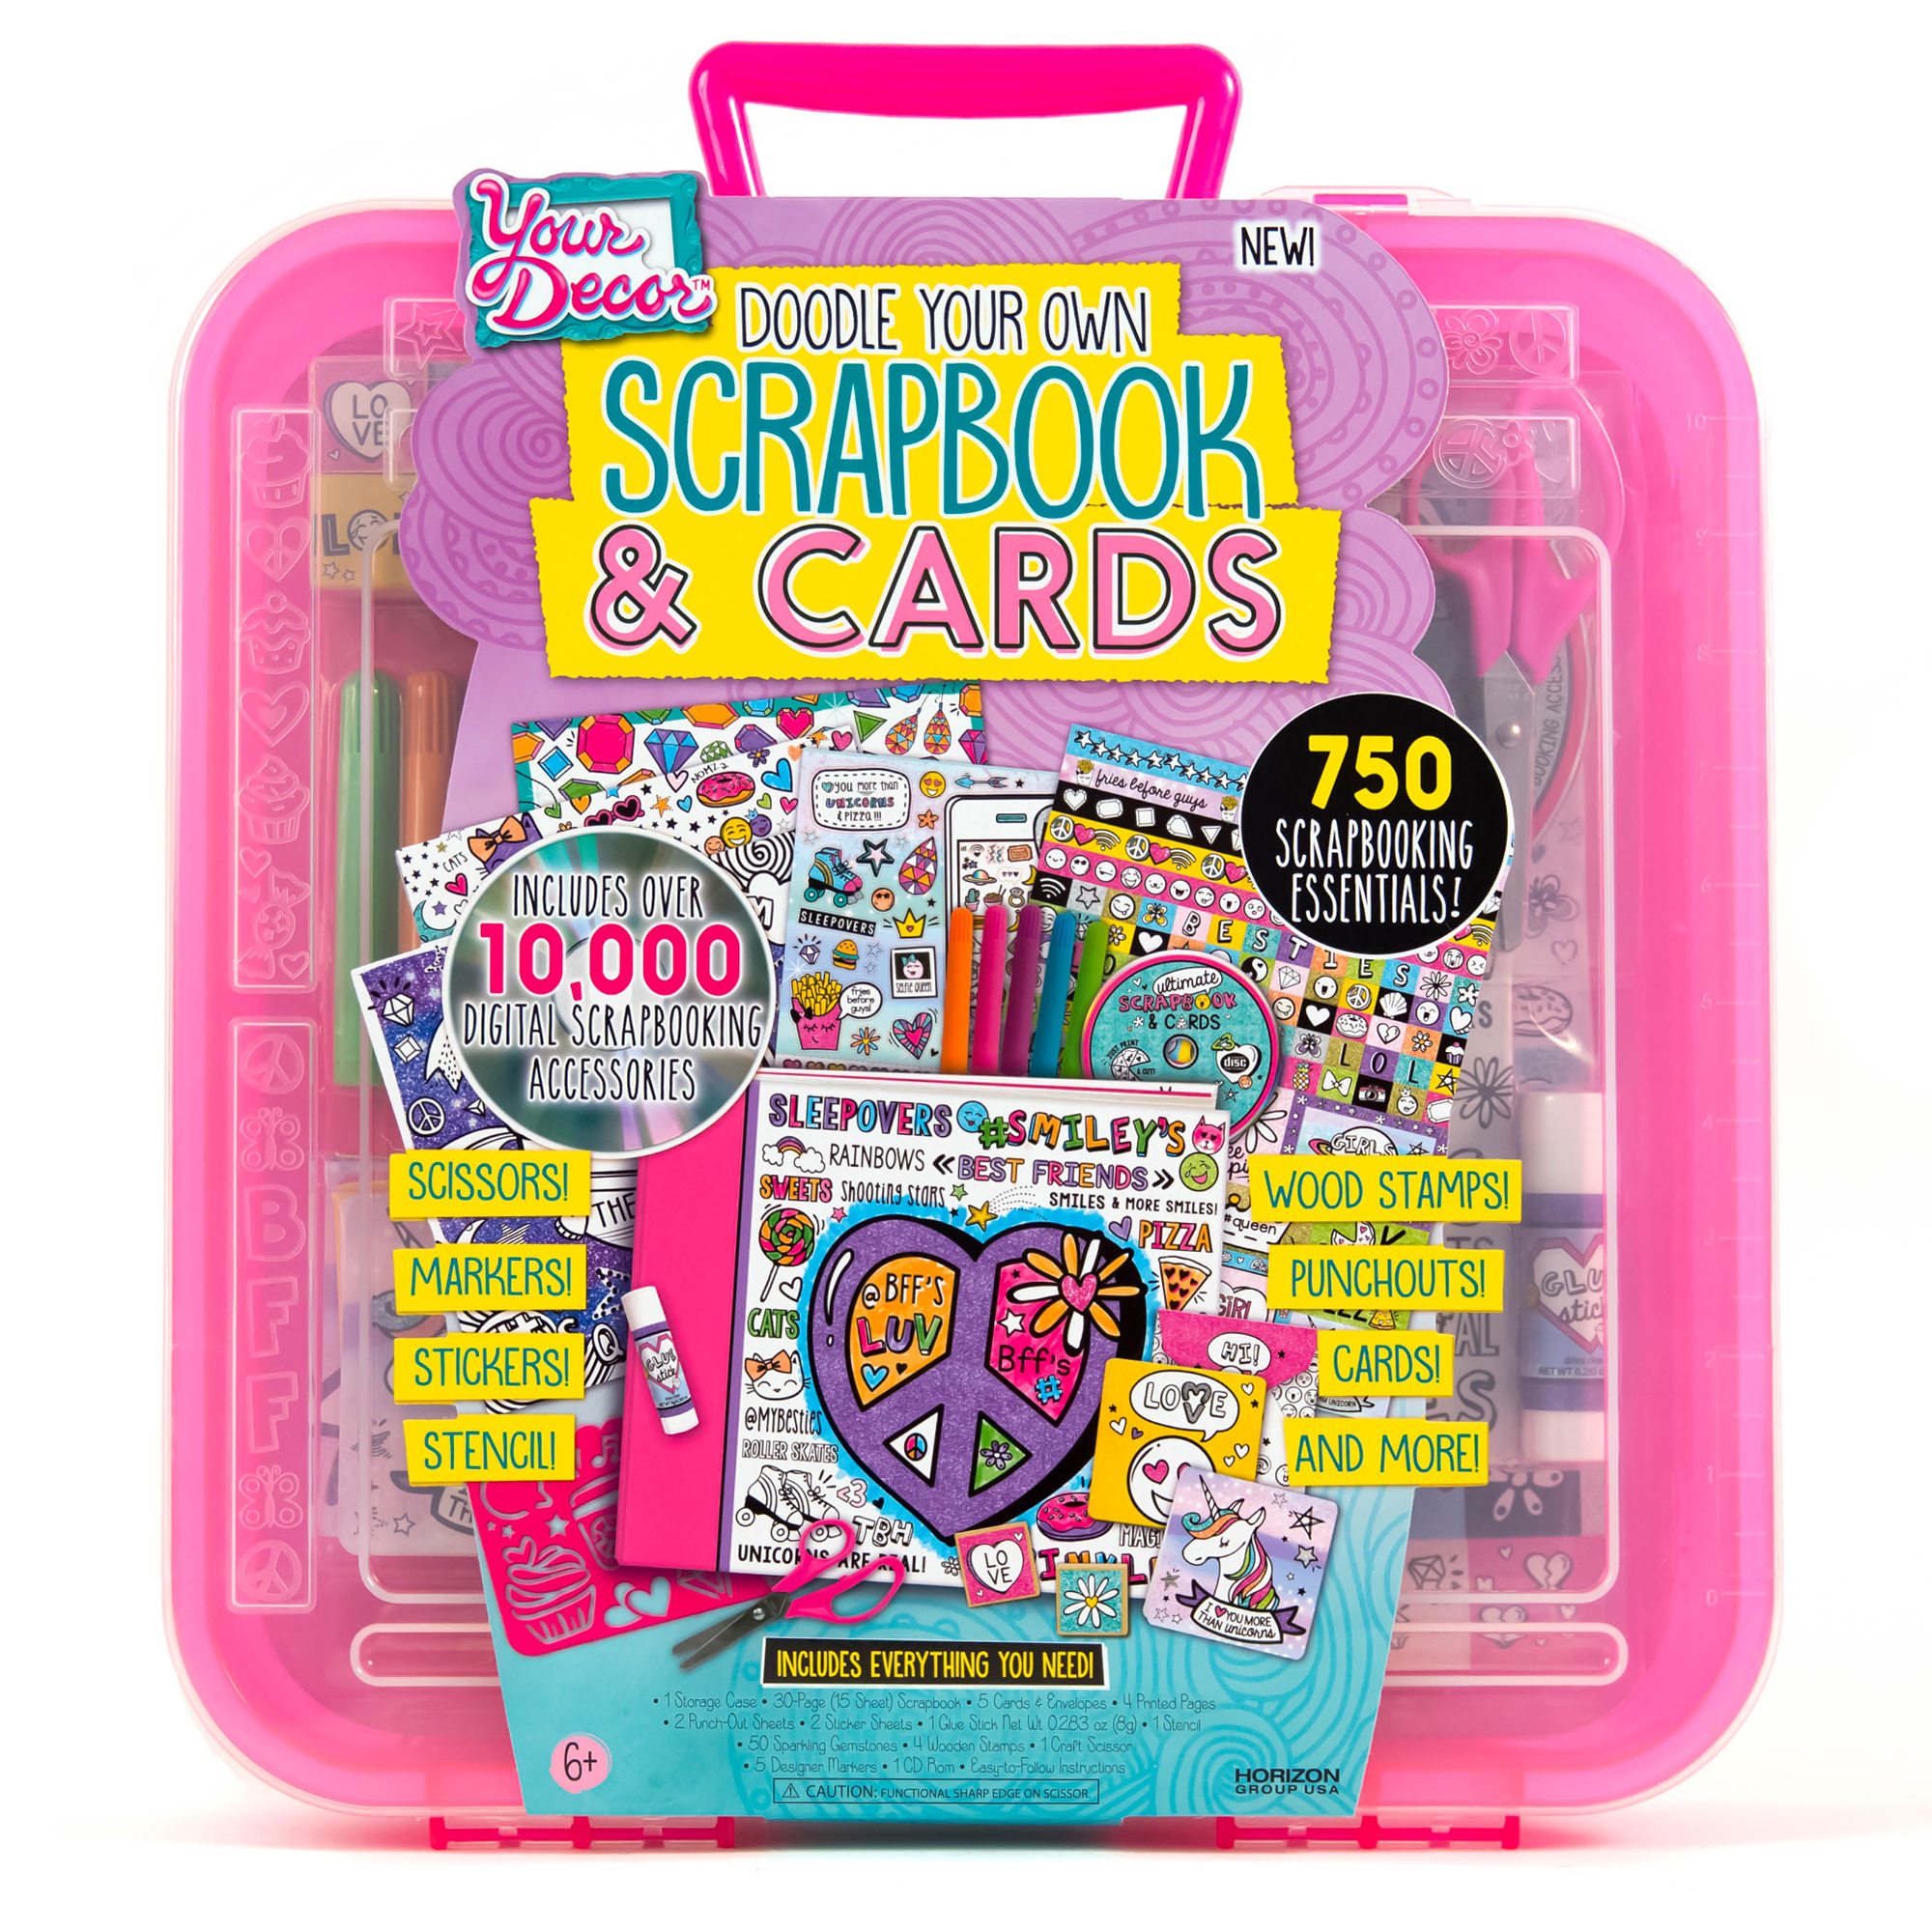 How to scrapbook faster - Your Decor Scrapbook Amp Cards Kit By Horizon Group Usa Walmart Com